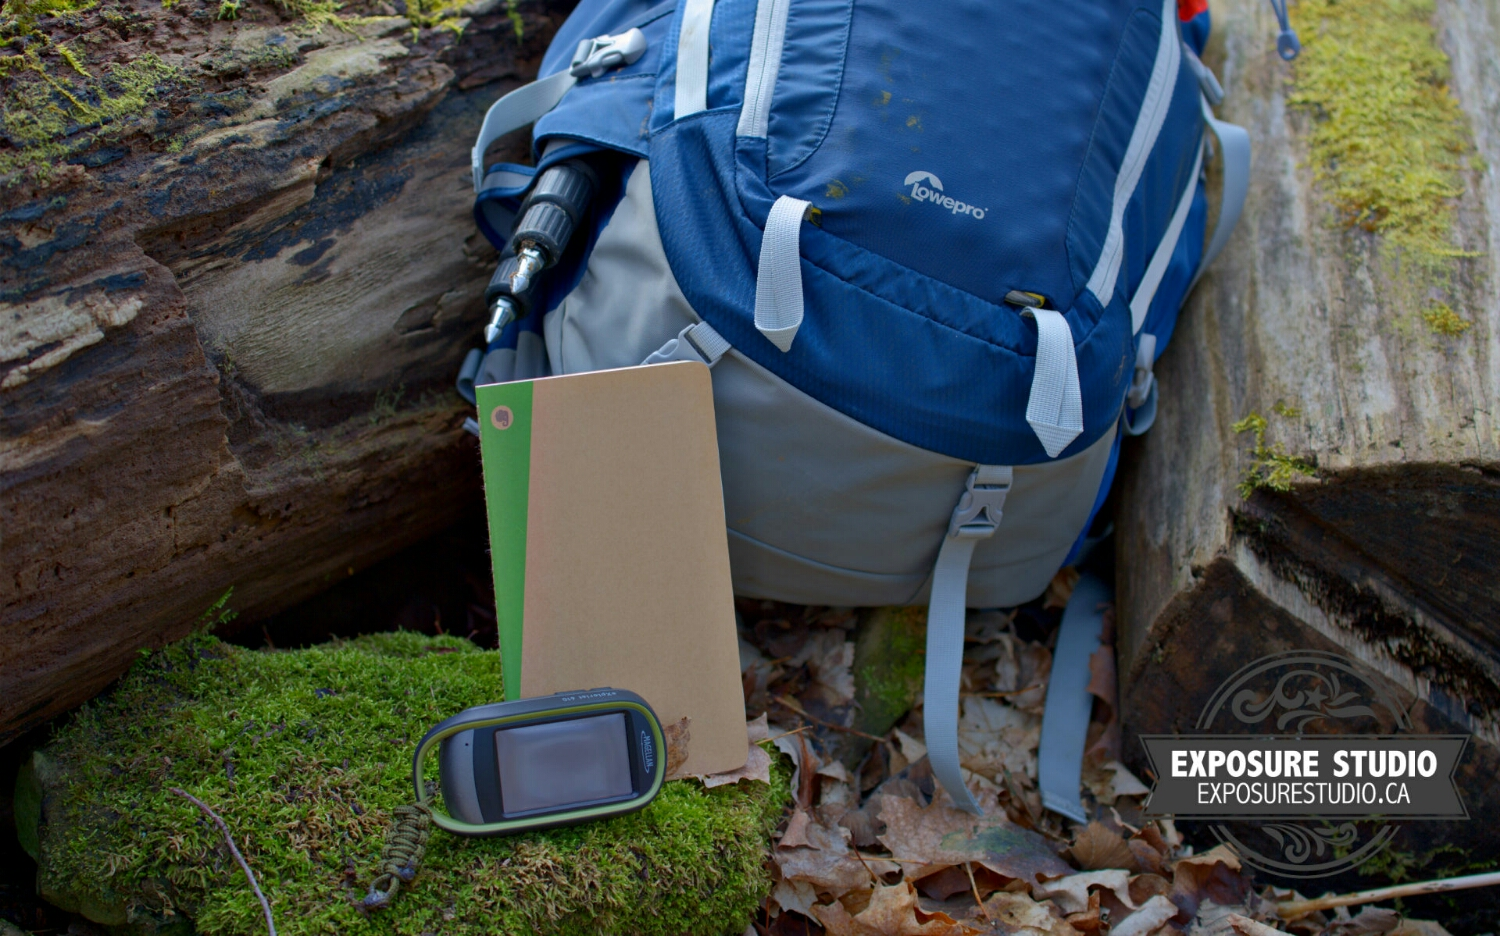 A nice resting place for the  Lowepro Rover Pro 45L ,  Magellan eXplorist 610 GPS  and  Evernote version Moleskine journal  while I'm shooting.